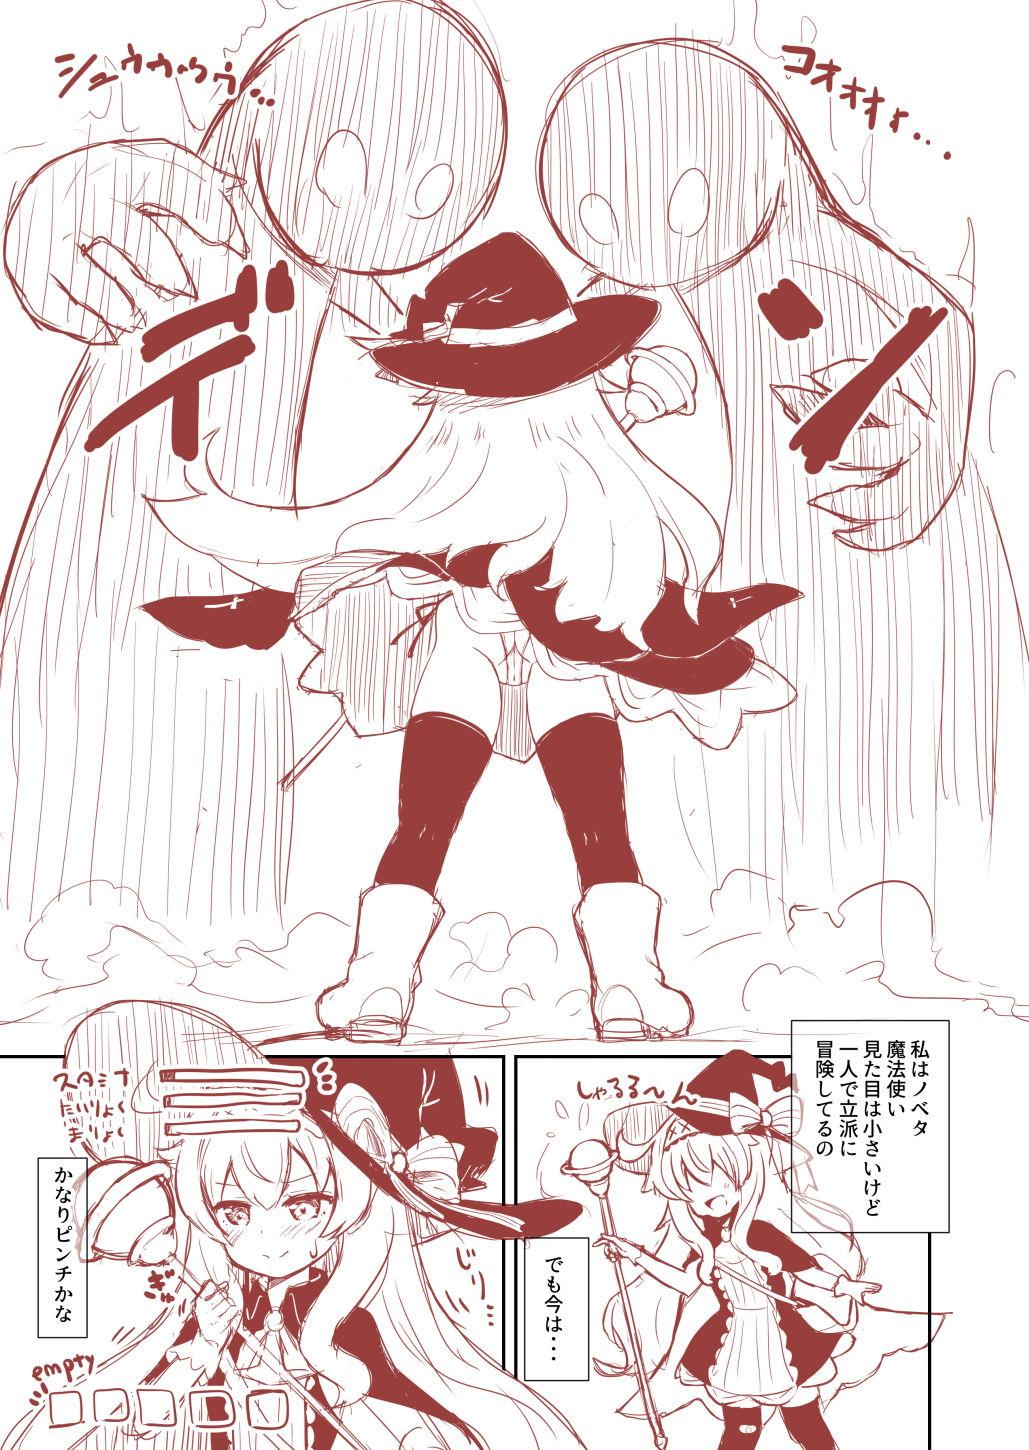 A story about Nobeta not returning to the Goddess Statue even though she failed 2